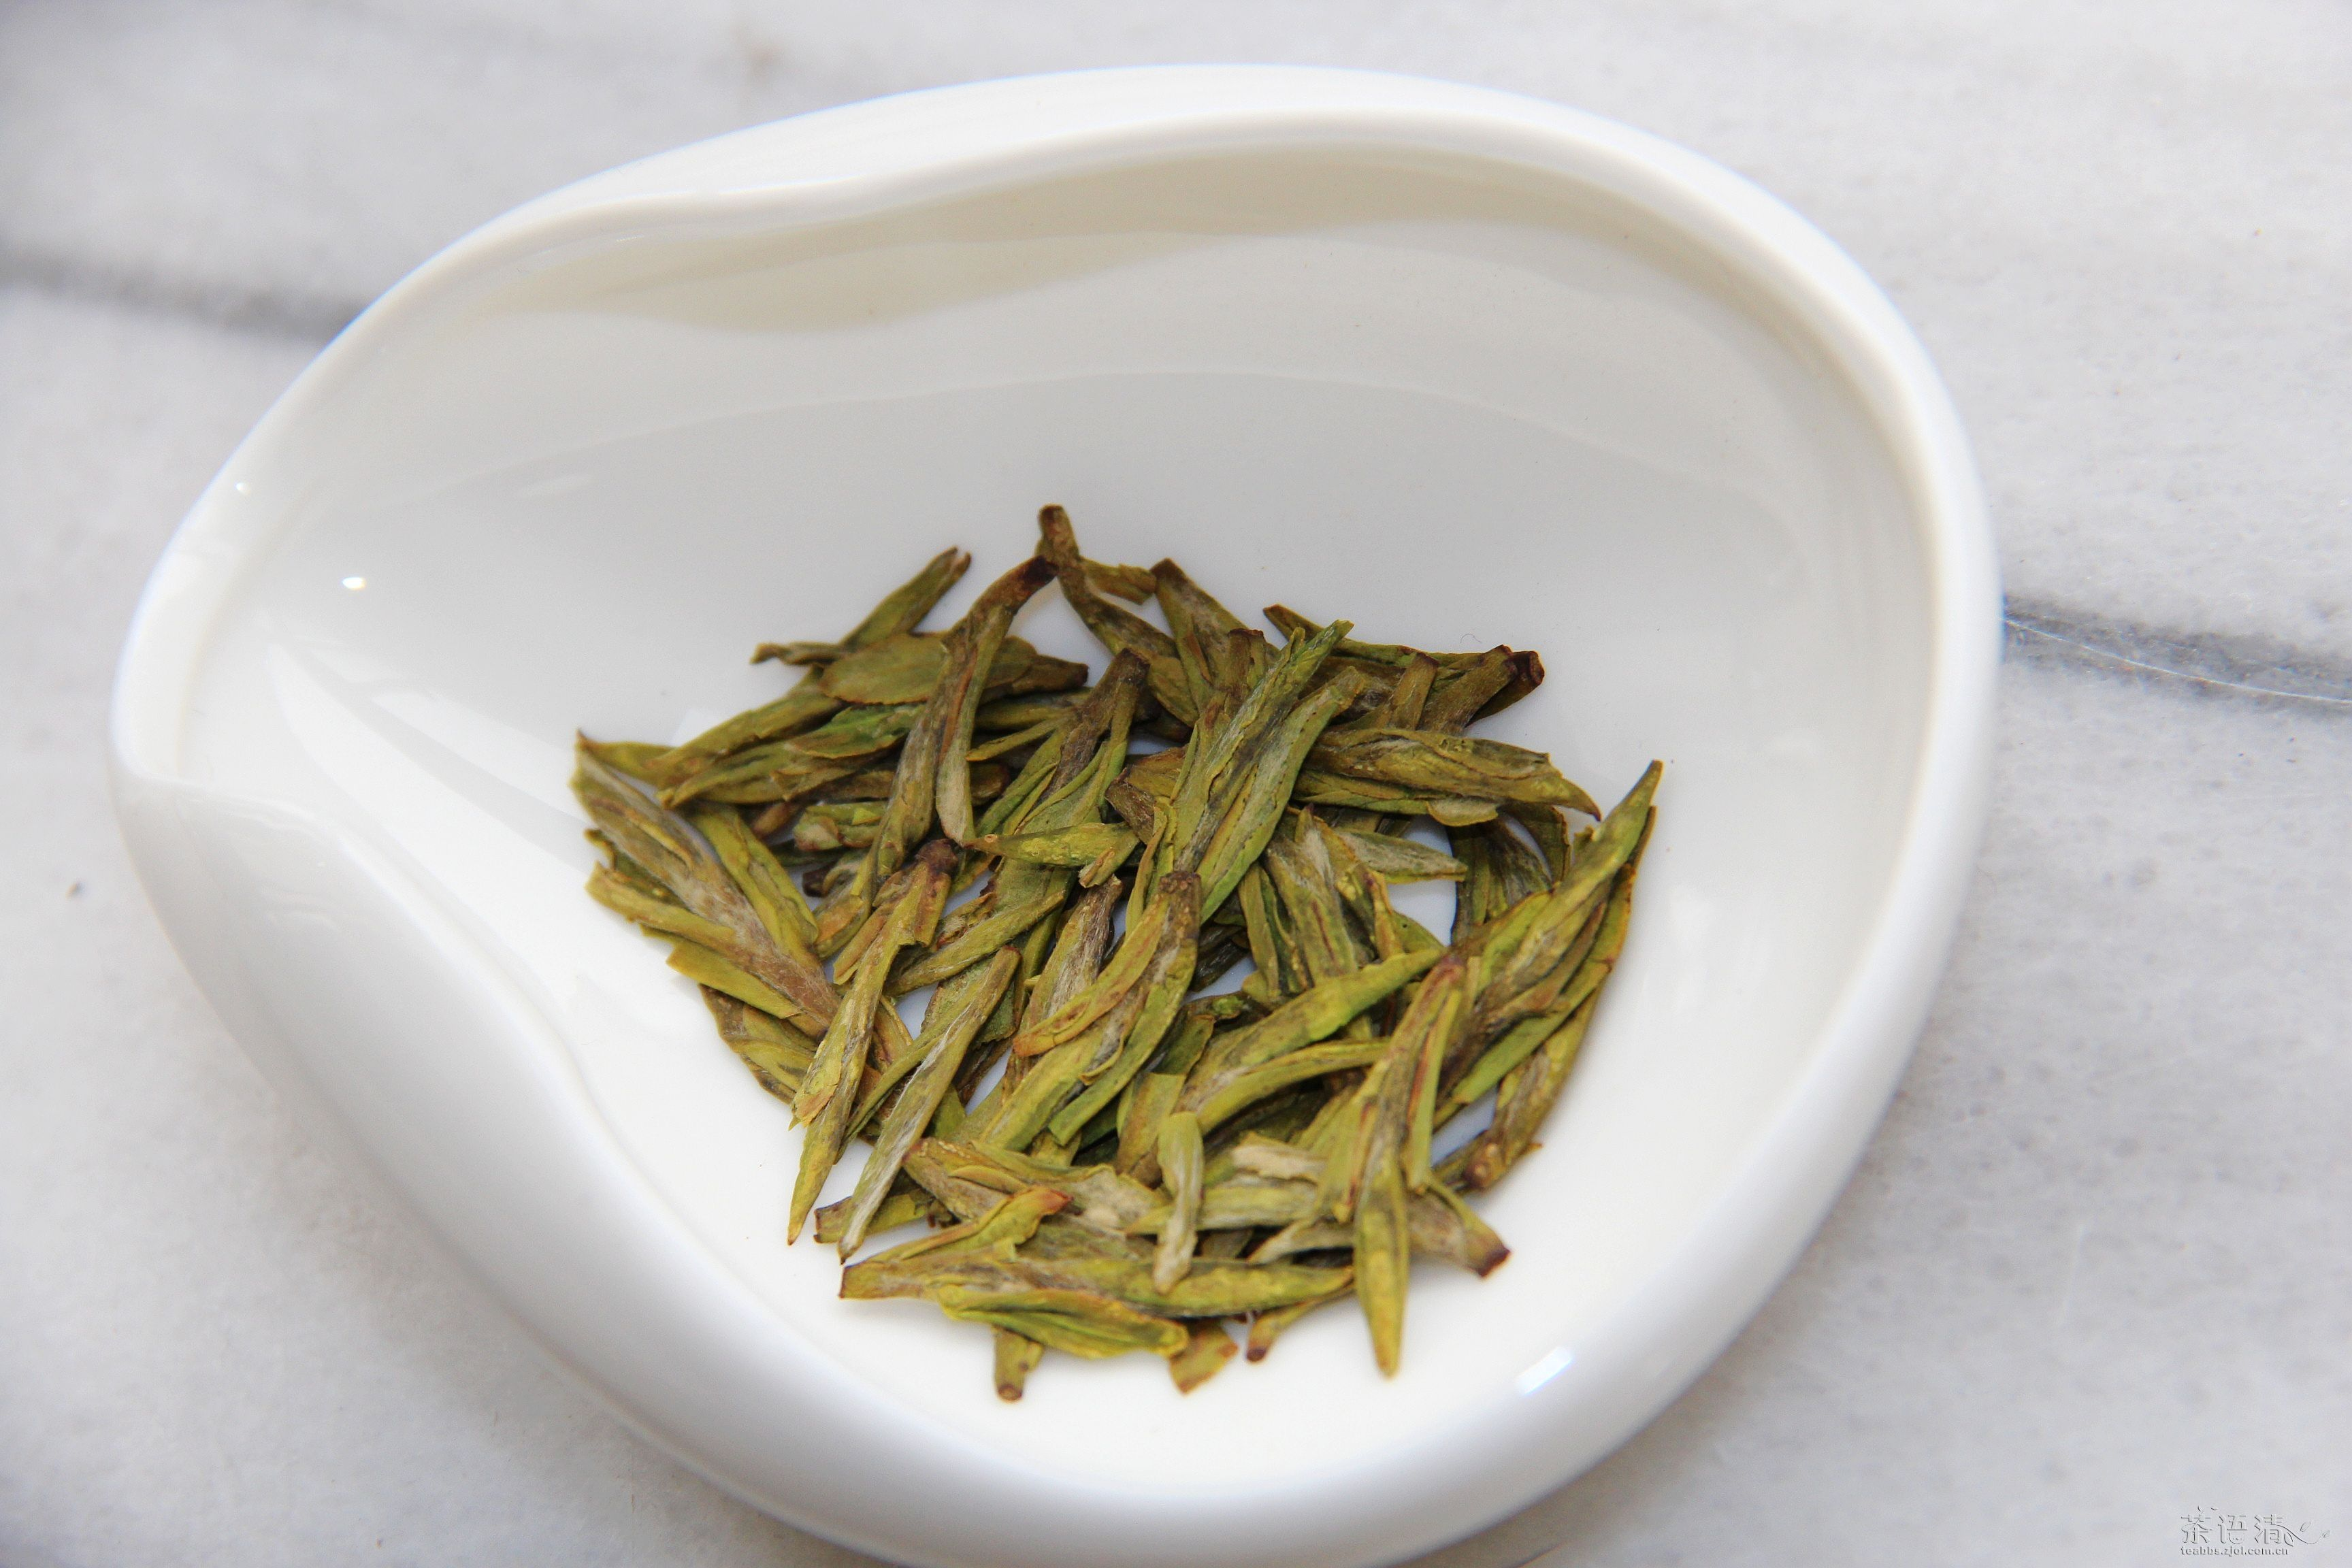 Fresh green tea is the ultimateway to welcome springtime